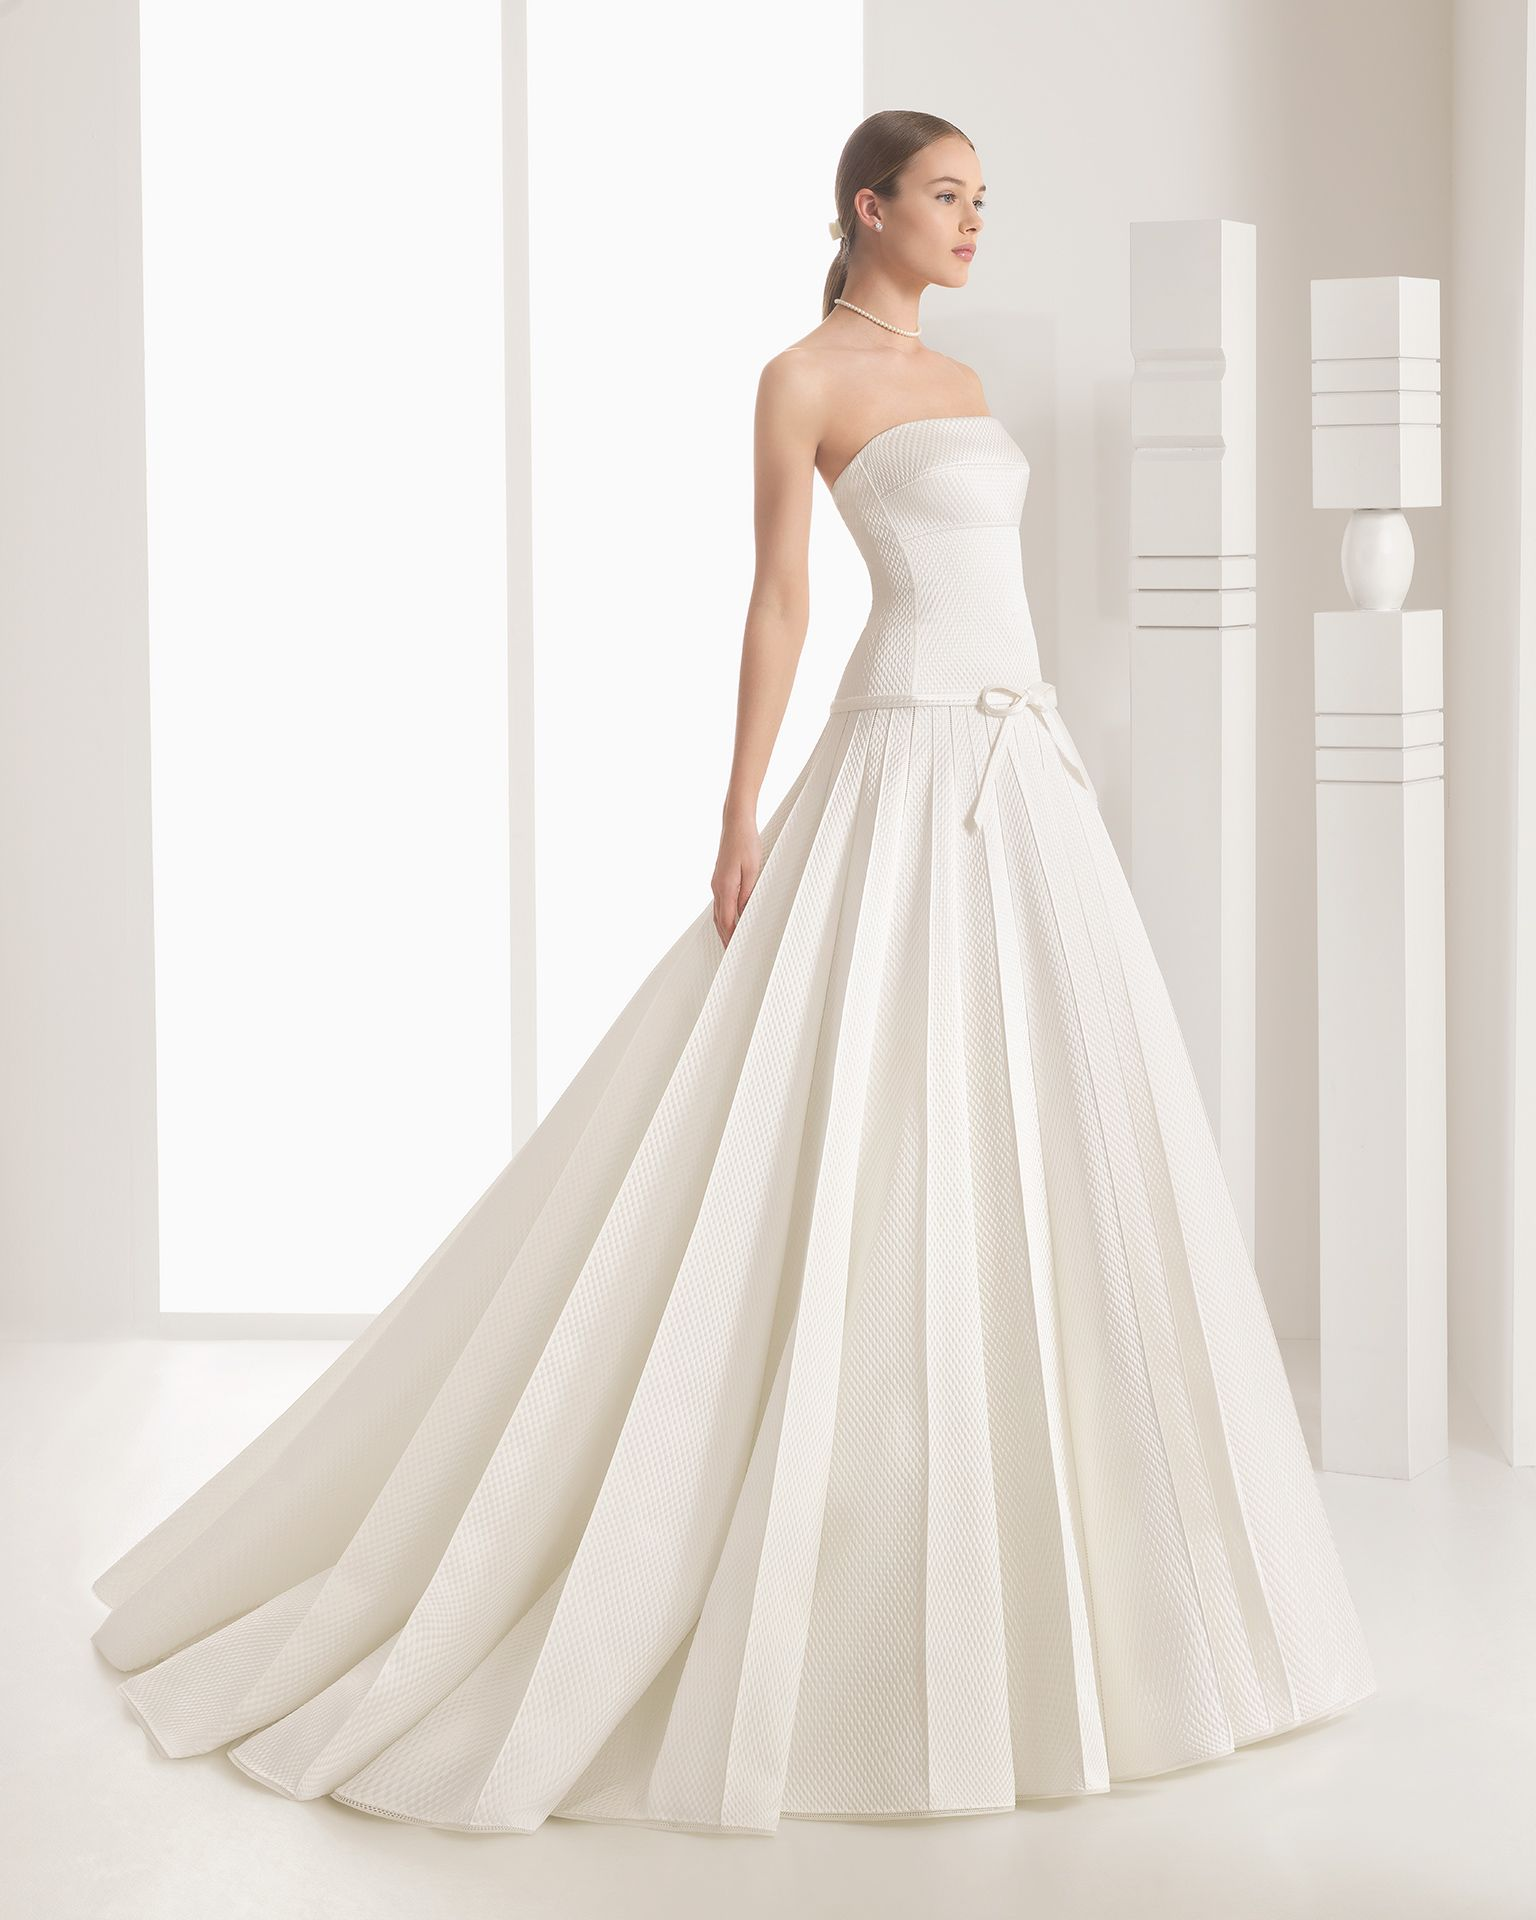 Dresses For Vow Renewal Ceremony: Sposa 2017. Collezione Rosa Clará In 2019